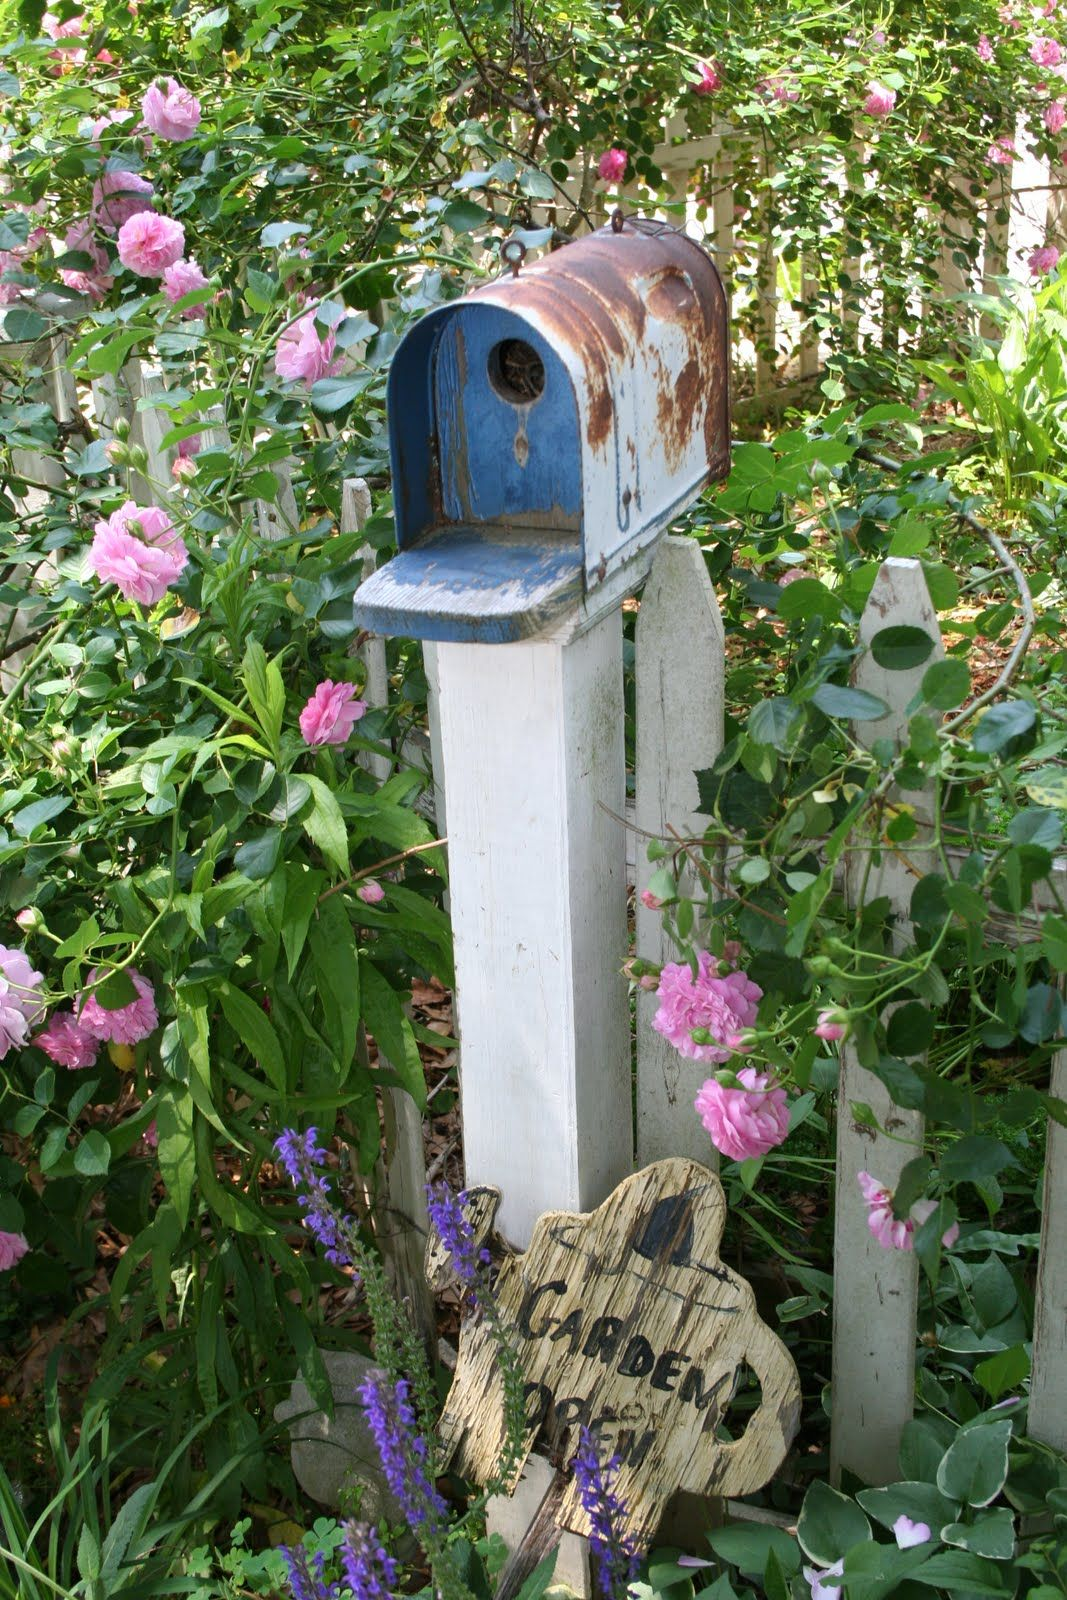 Birds From Old Mailbox